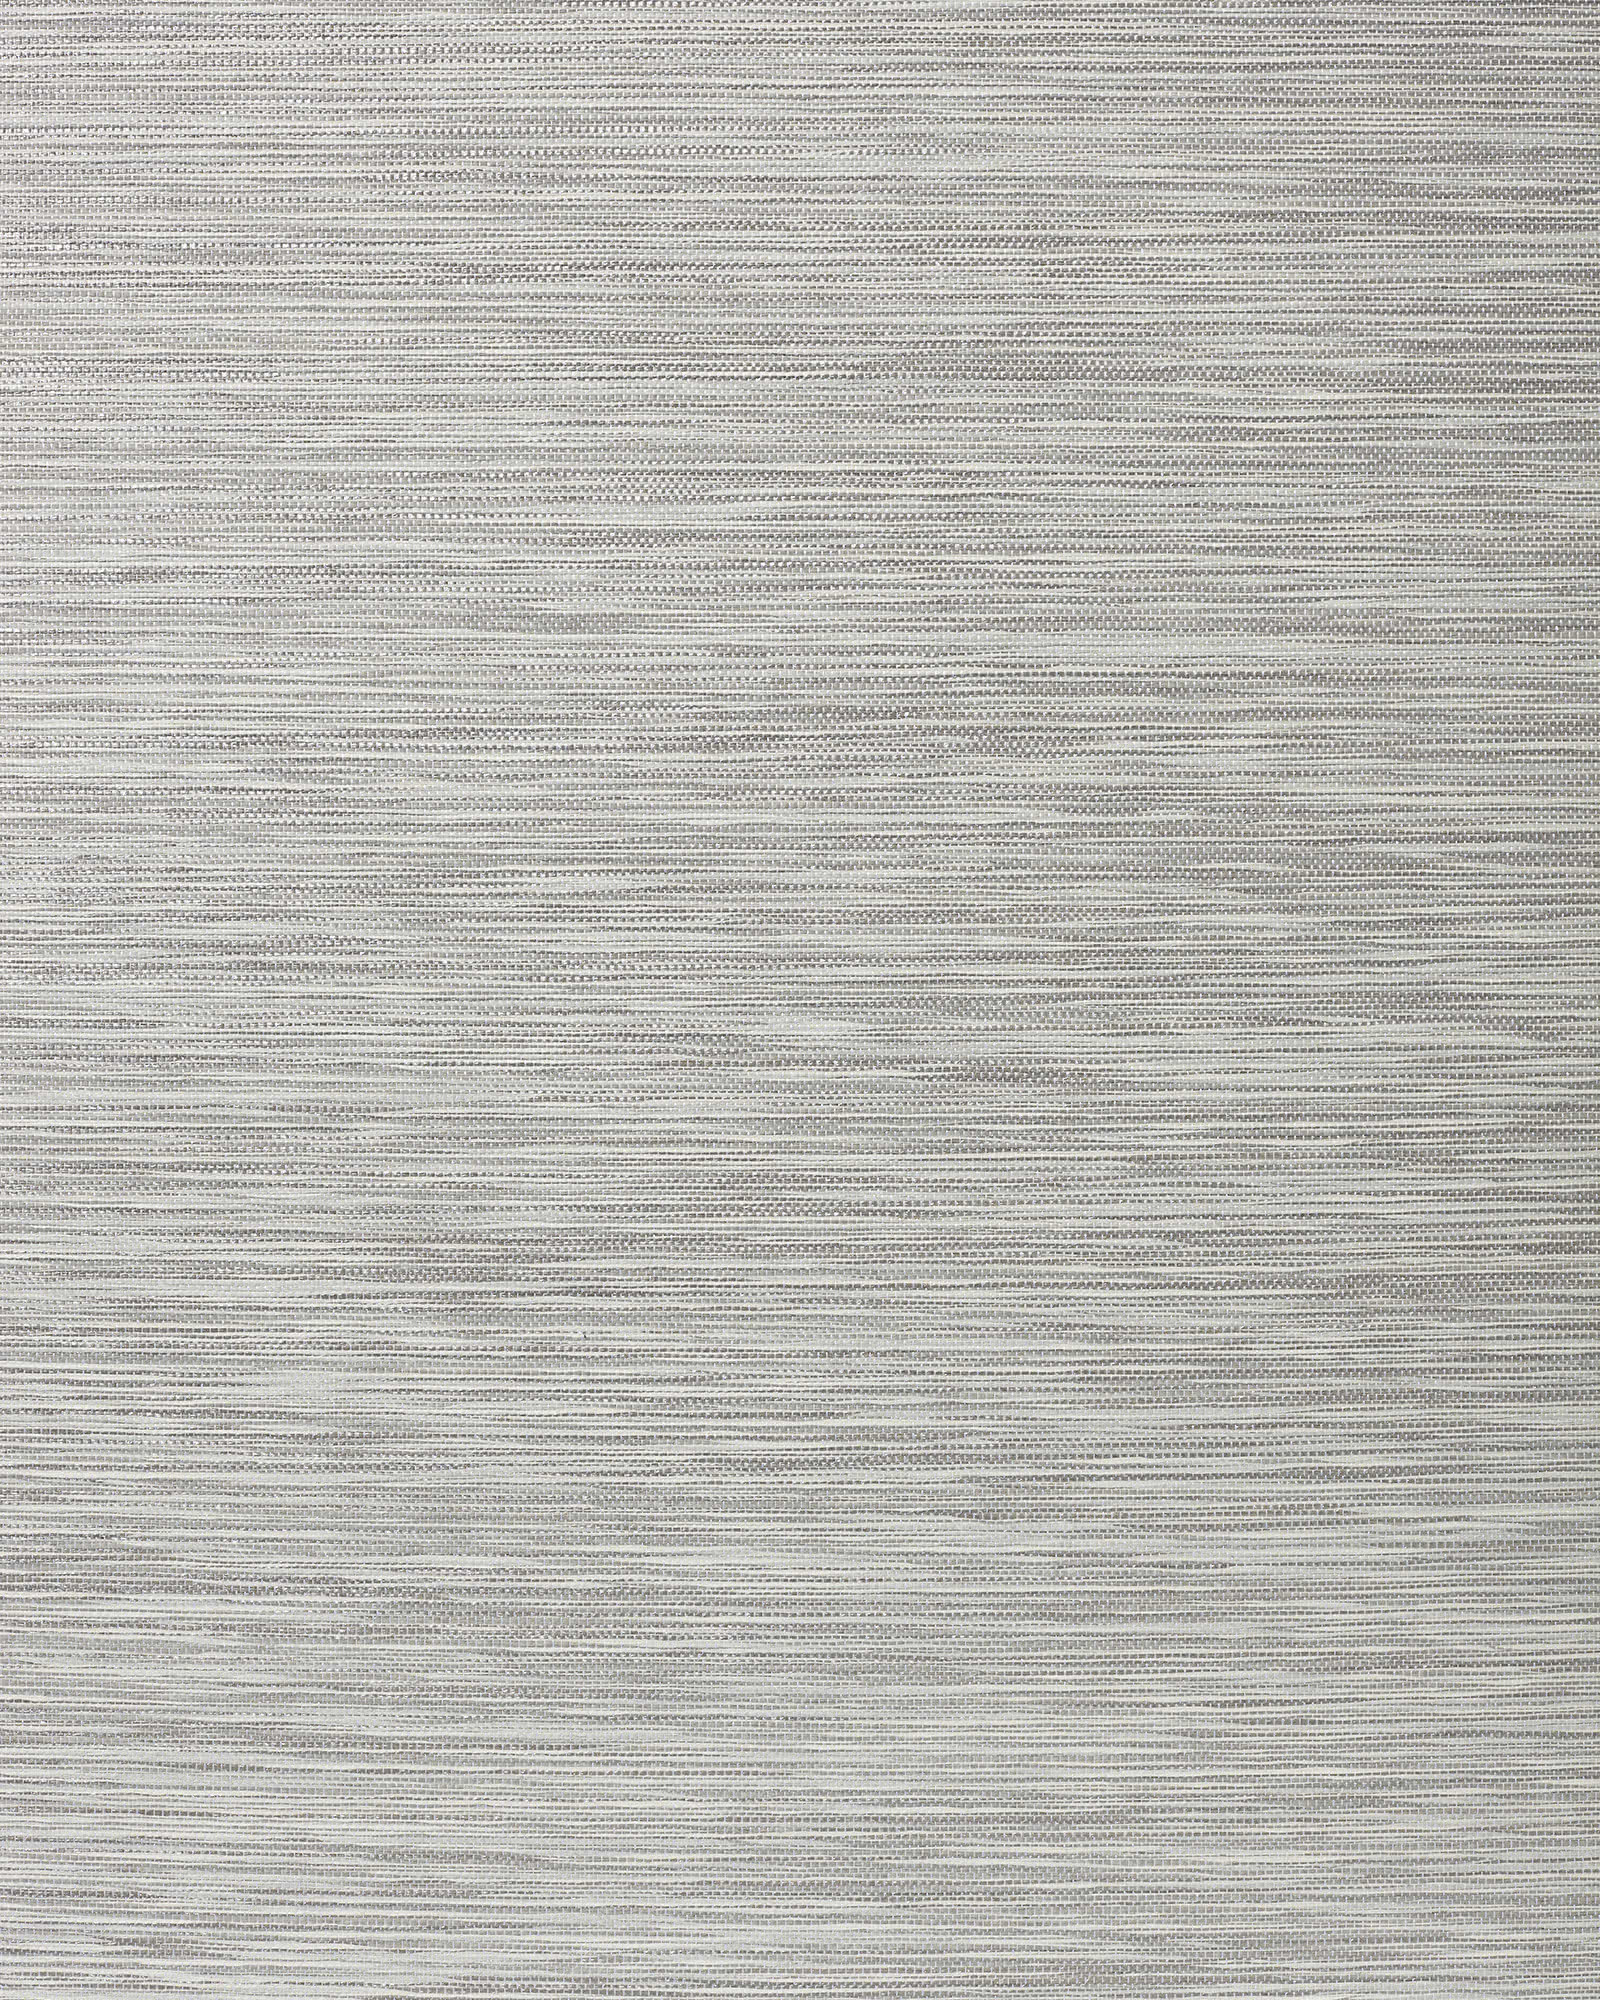 Swansea Paperweave Wallcovering Swatch, Fog